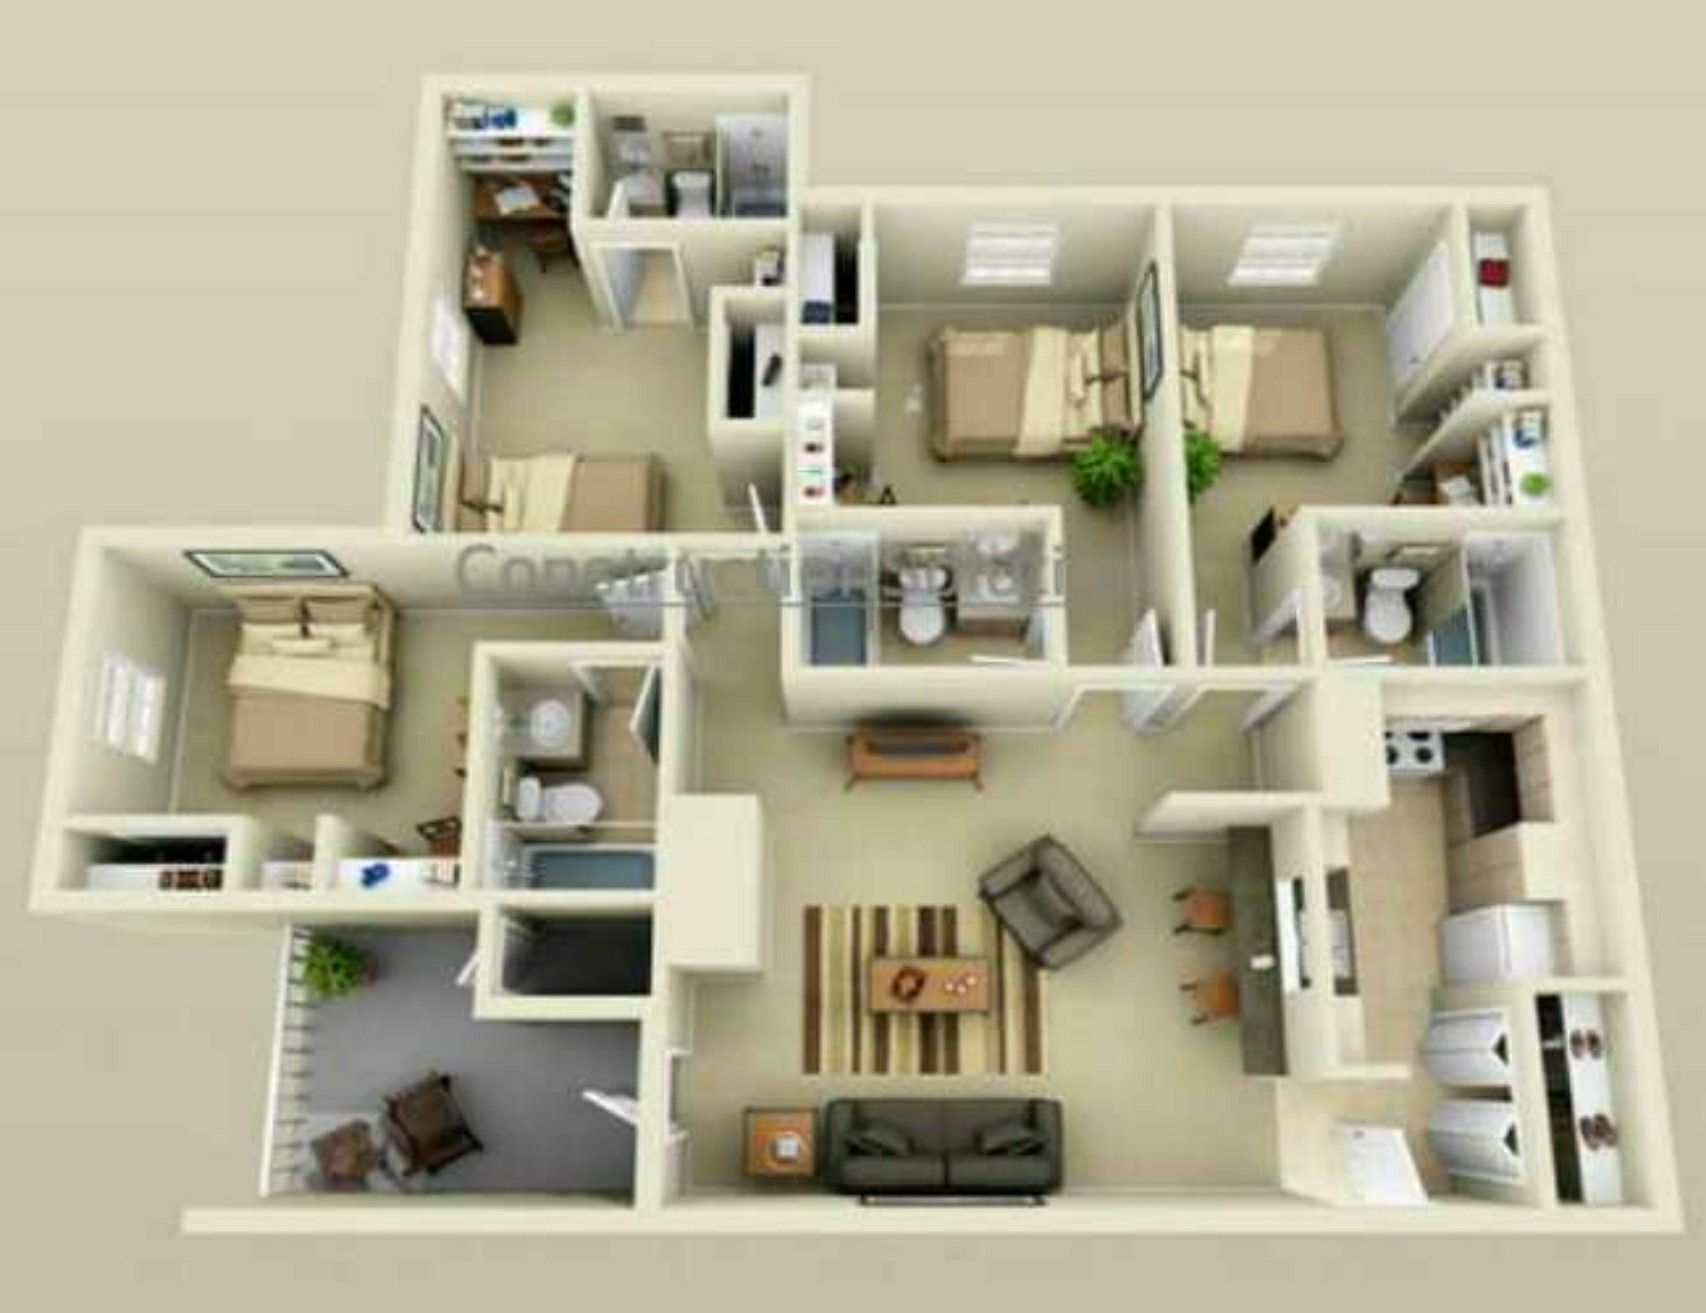 Pin By Crys Charbs On Floor Plans House Ideas 4 Bedroom House Designs 3d House Plans Apartment Layout